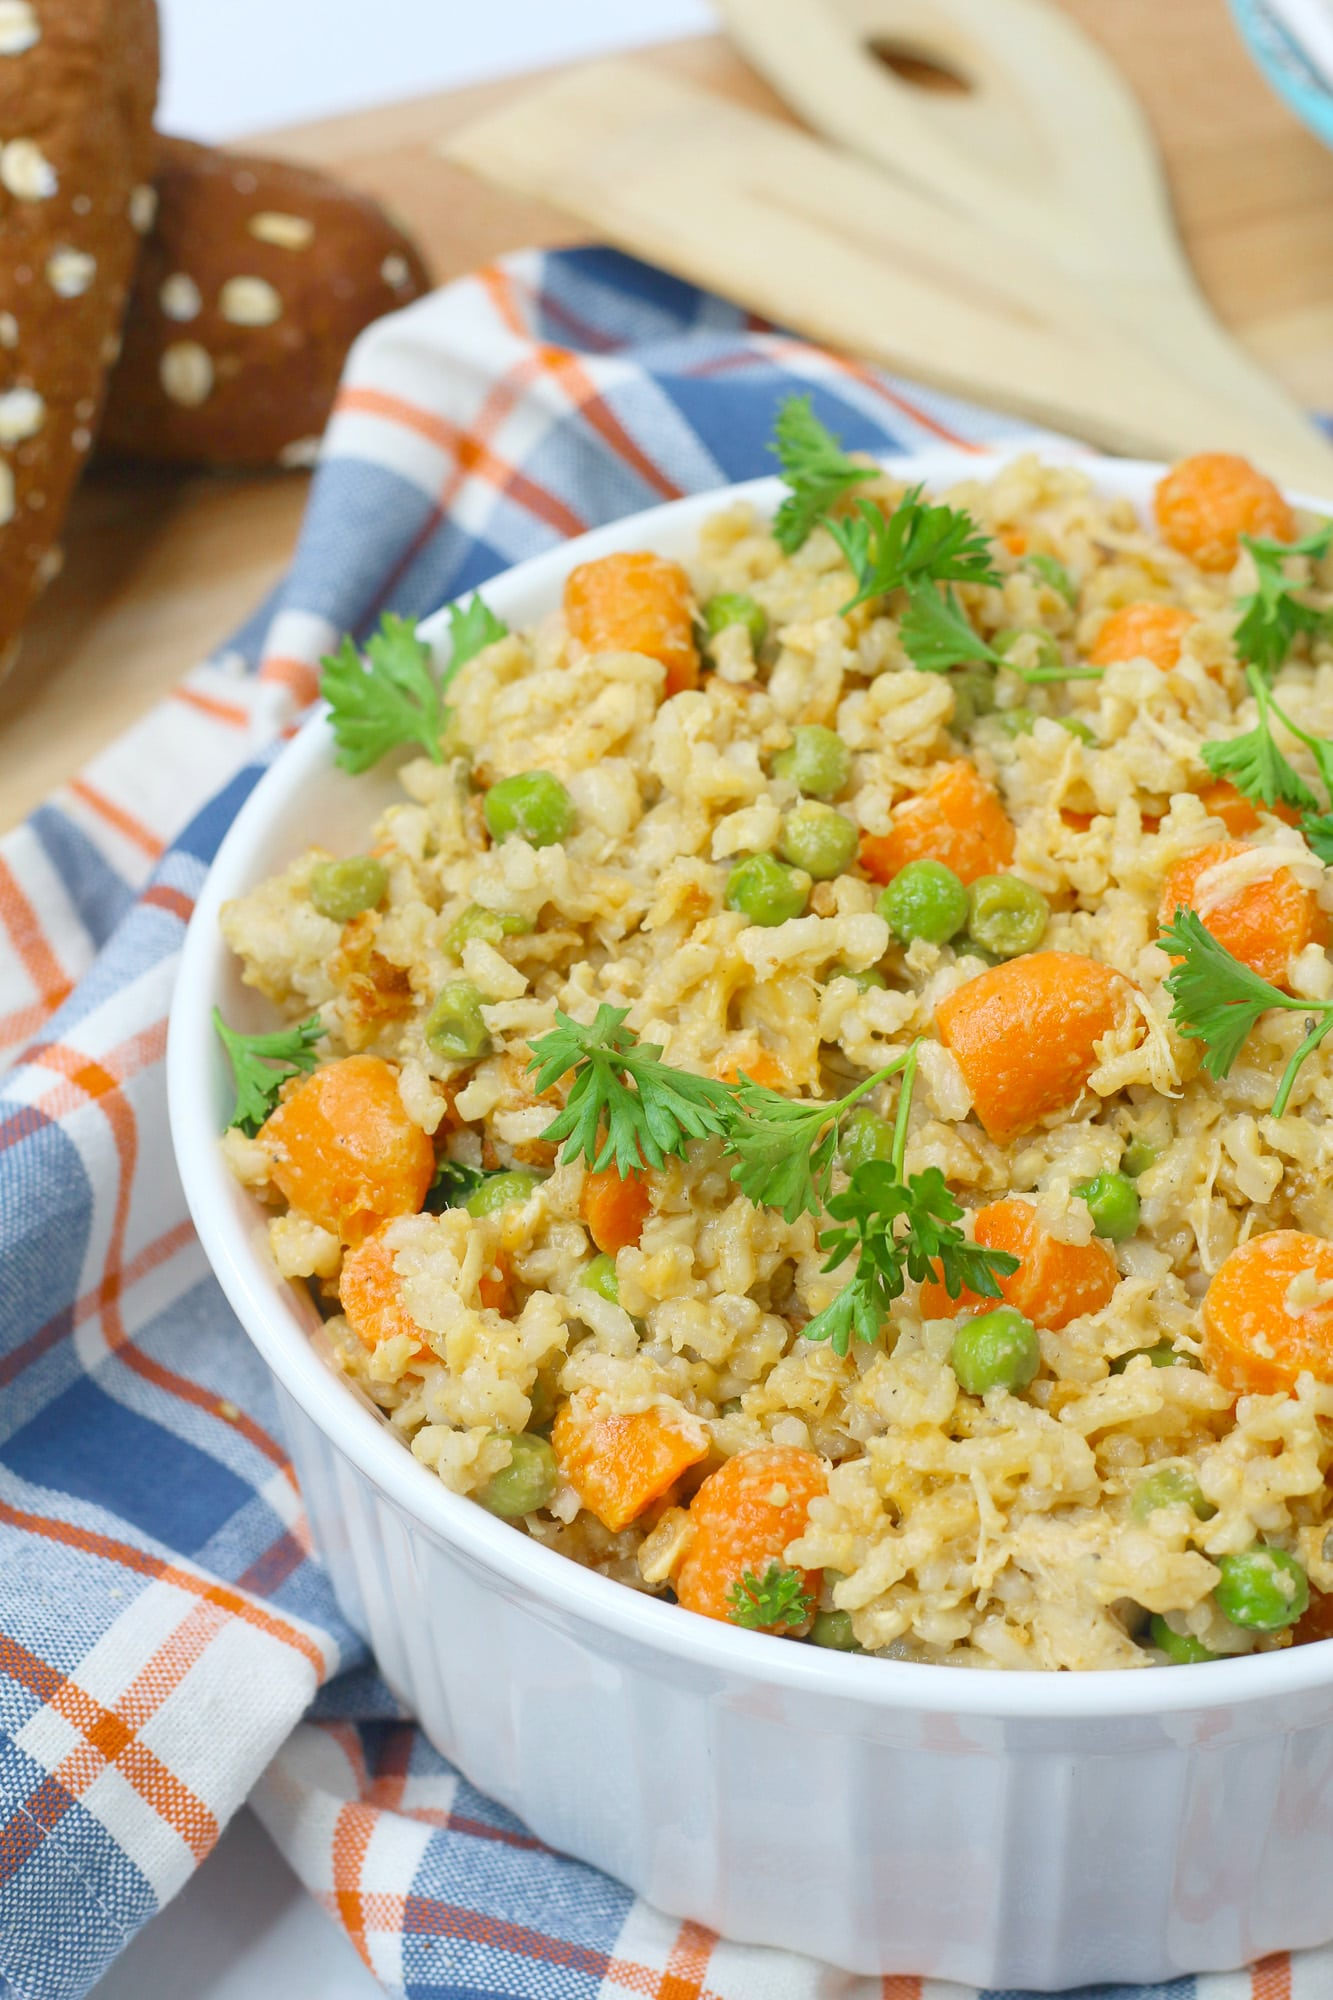 chicken and rice with vegetables in white dish